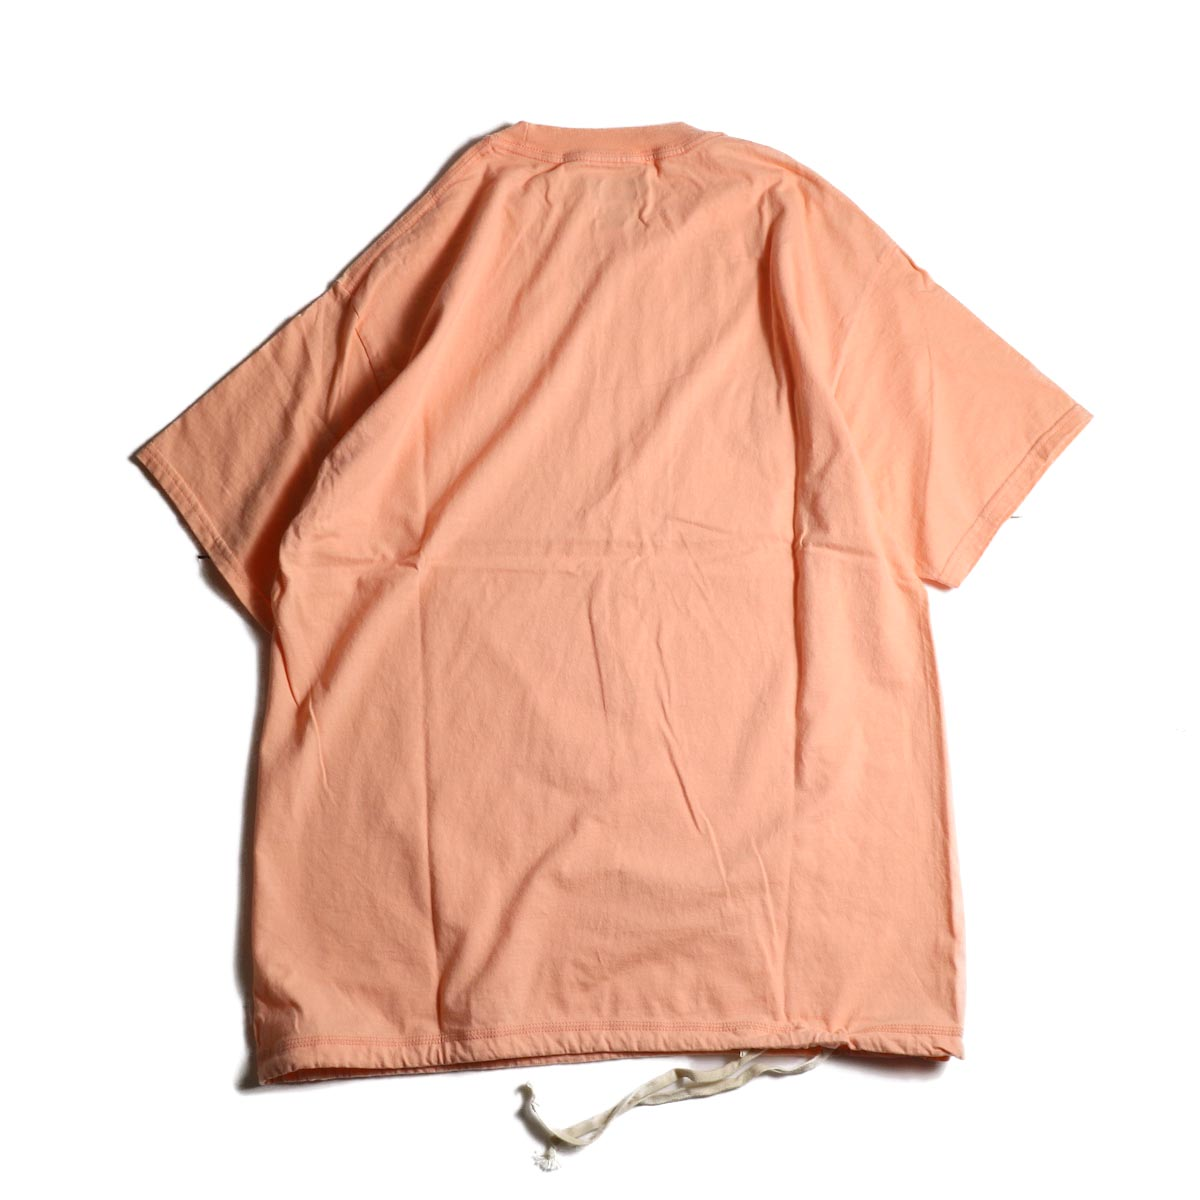 HESTRADA GEE-WIZ / SWITCH S/S Tee (Candy Orange)背面